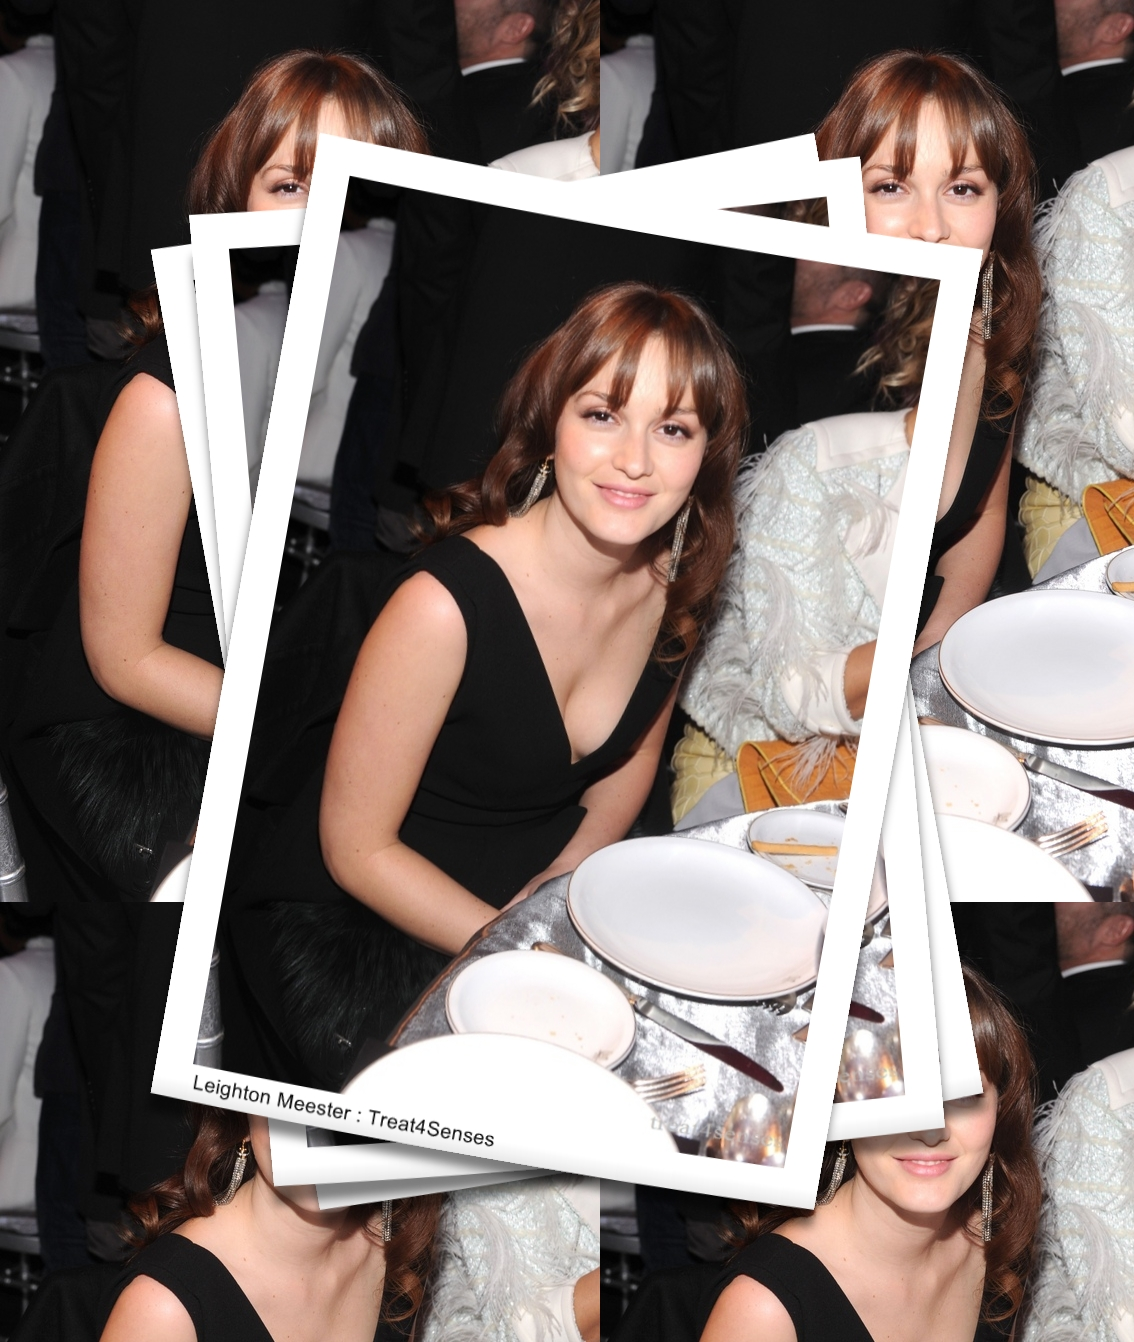 http://4.bp.blogspot.com/-kaShS8Ndq1c/TzaTge0zcRI/AAAAAAAAEmg/zQfEf8mV_Qo/s1600/leighton-meester-amfar-new-york-fashion-treat4senses.jpg